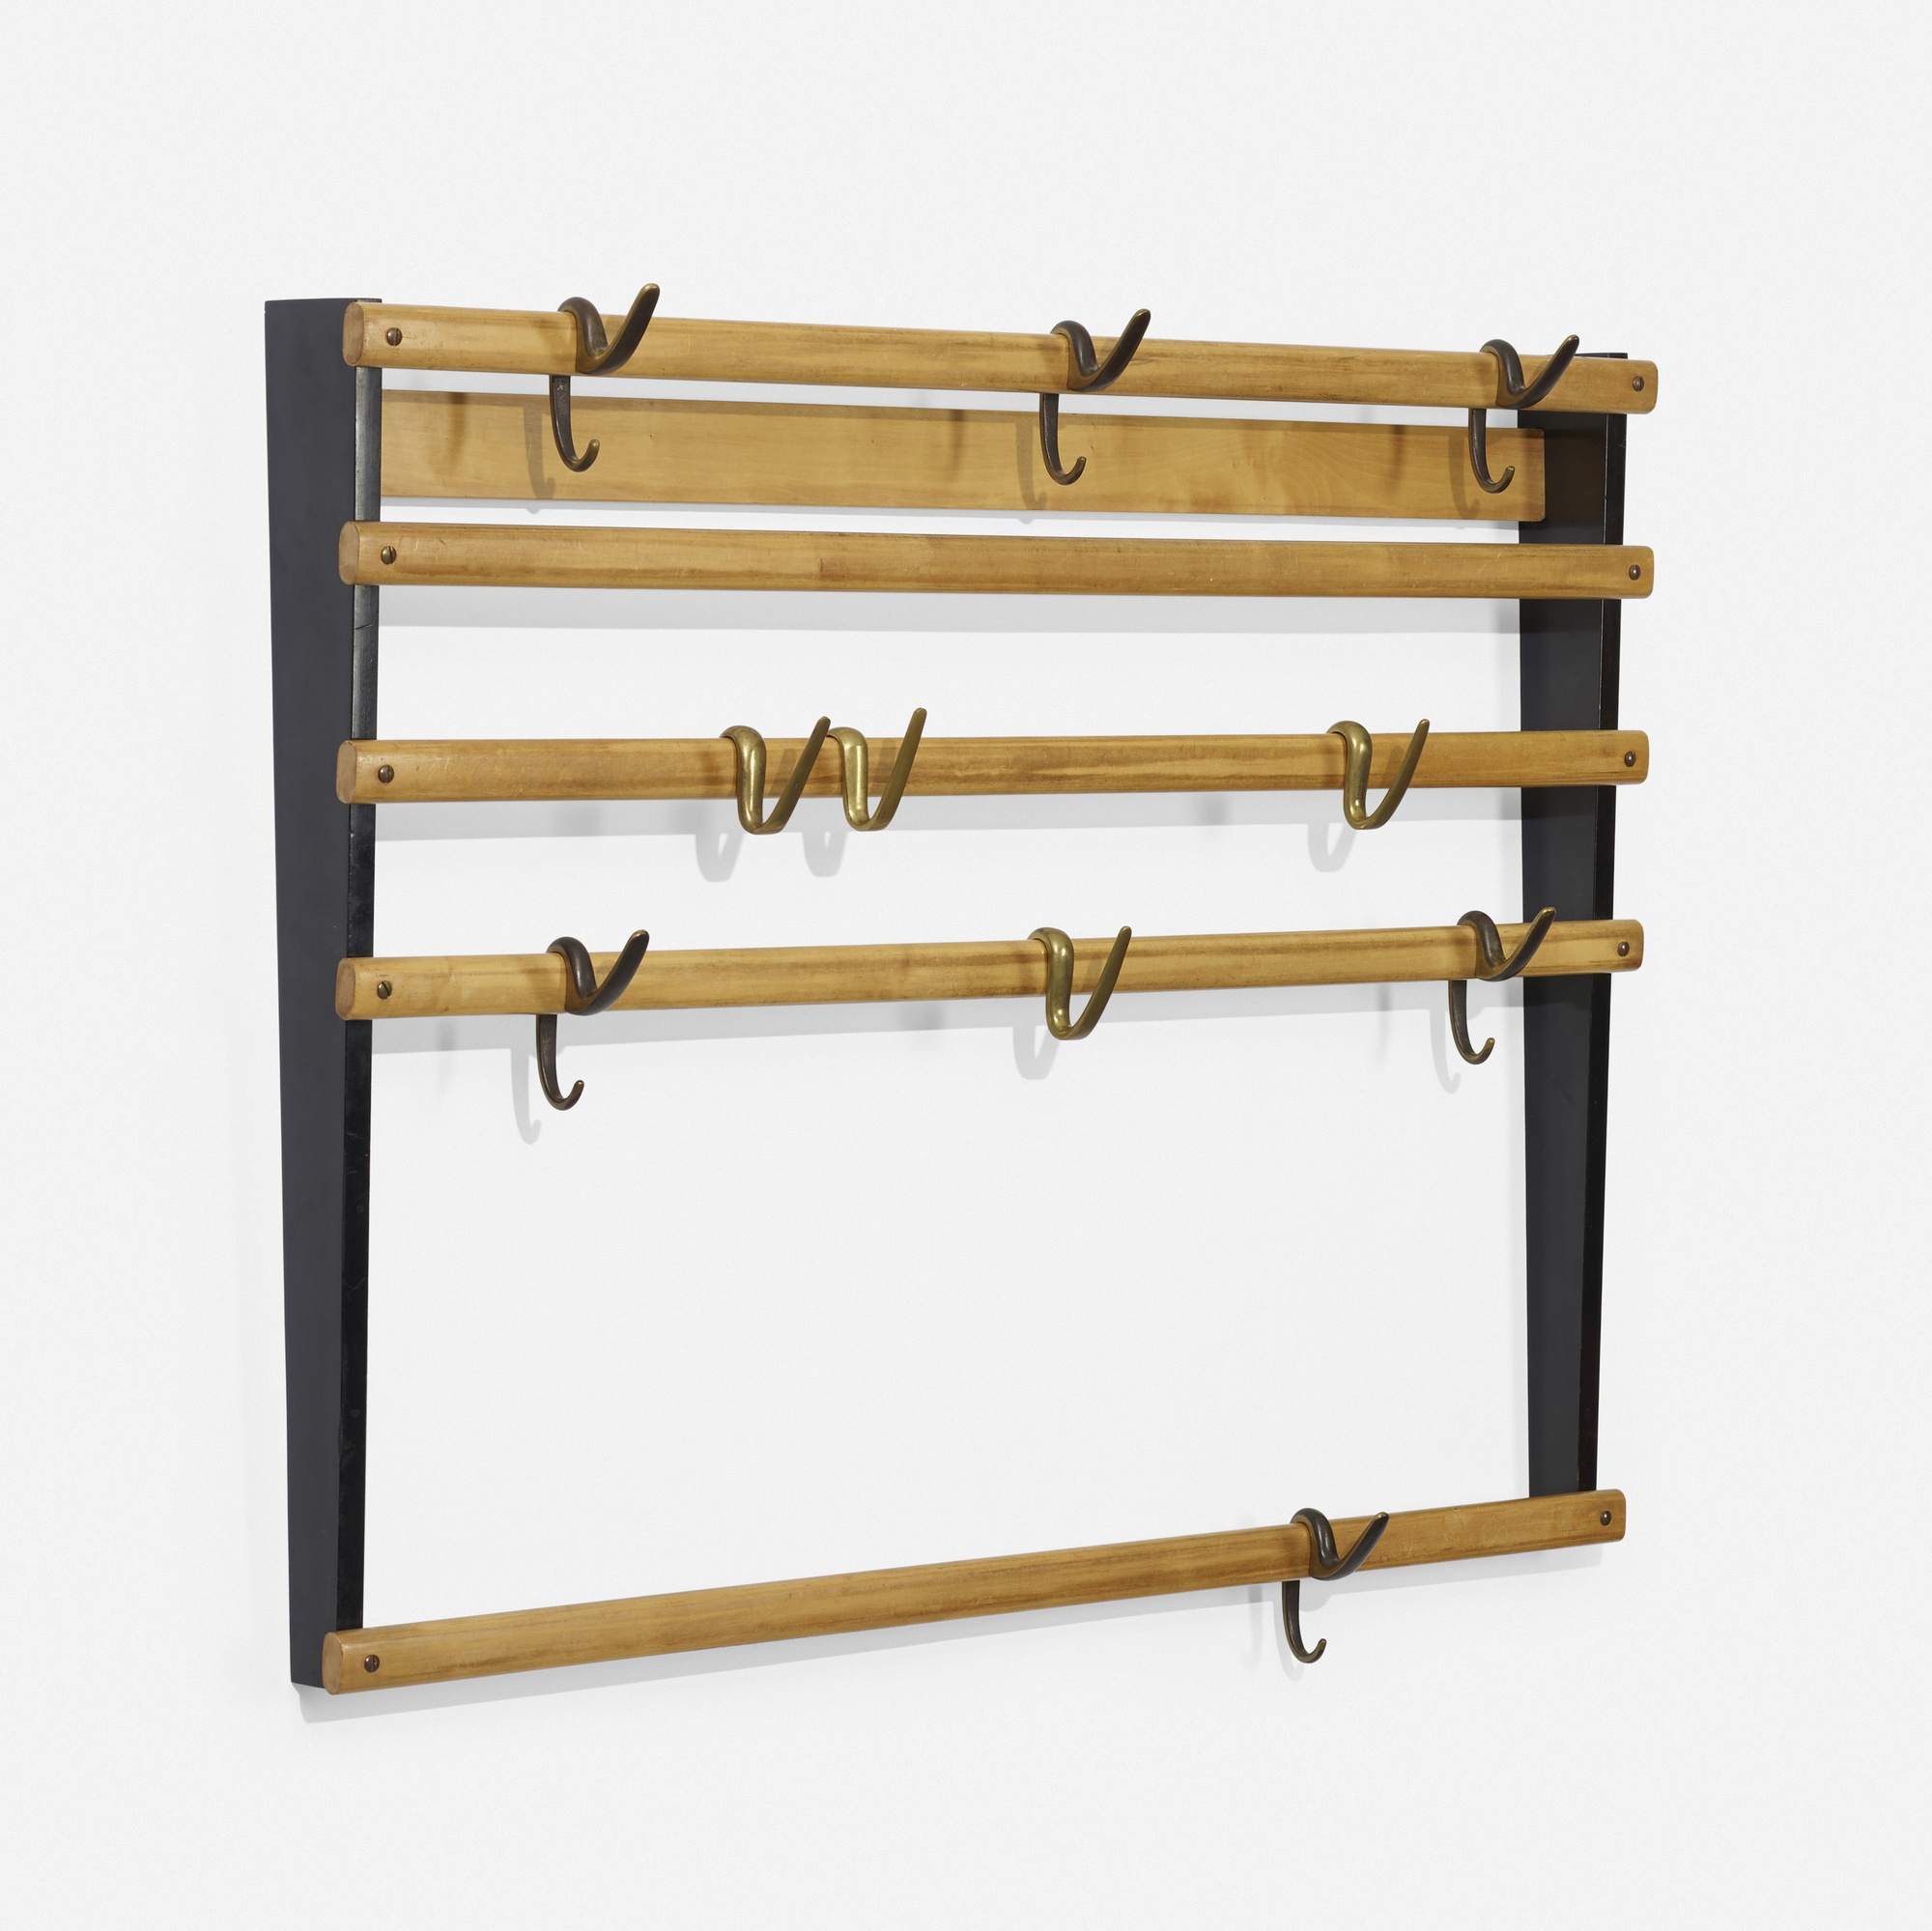 129: Carl Auböck II / wall-mounted coatrack, model 4547 (1 of 2)